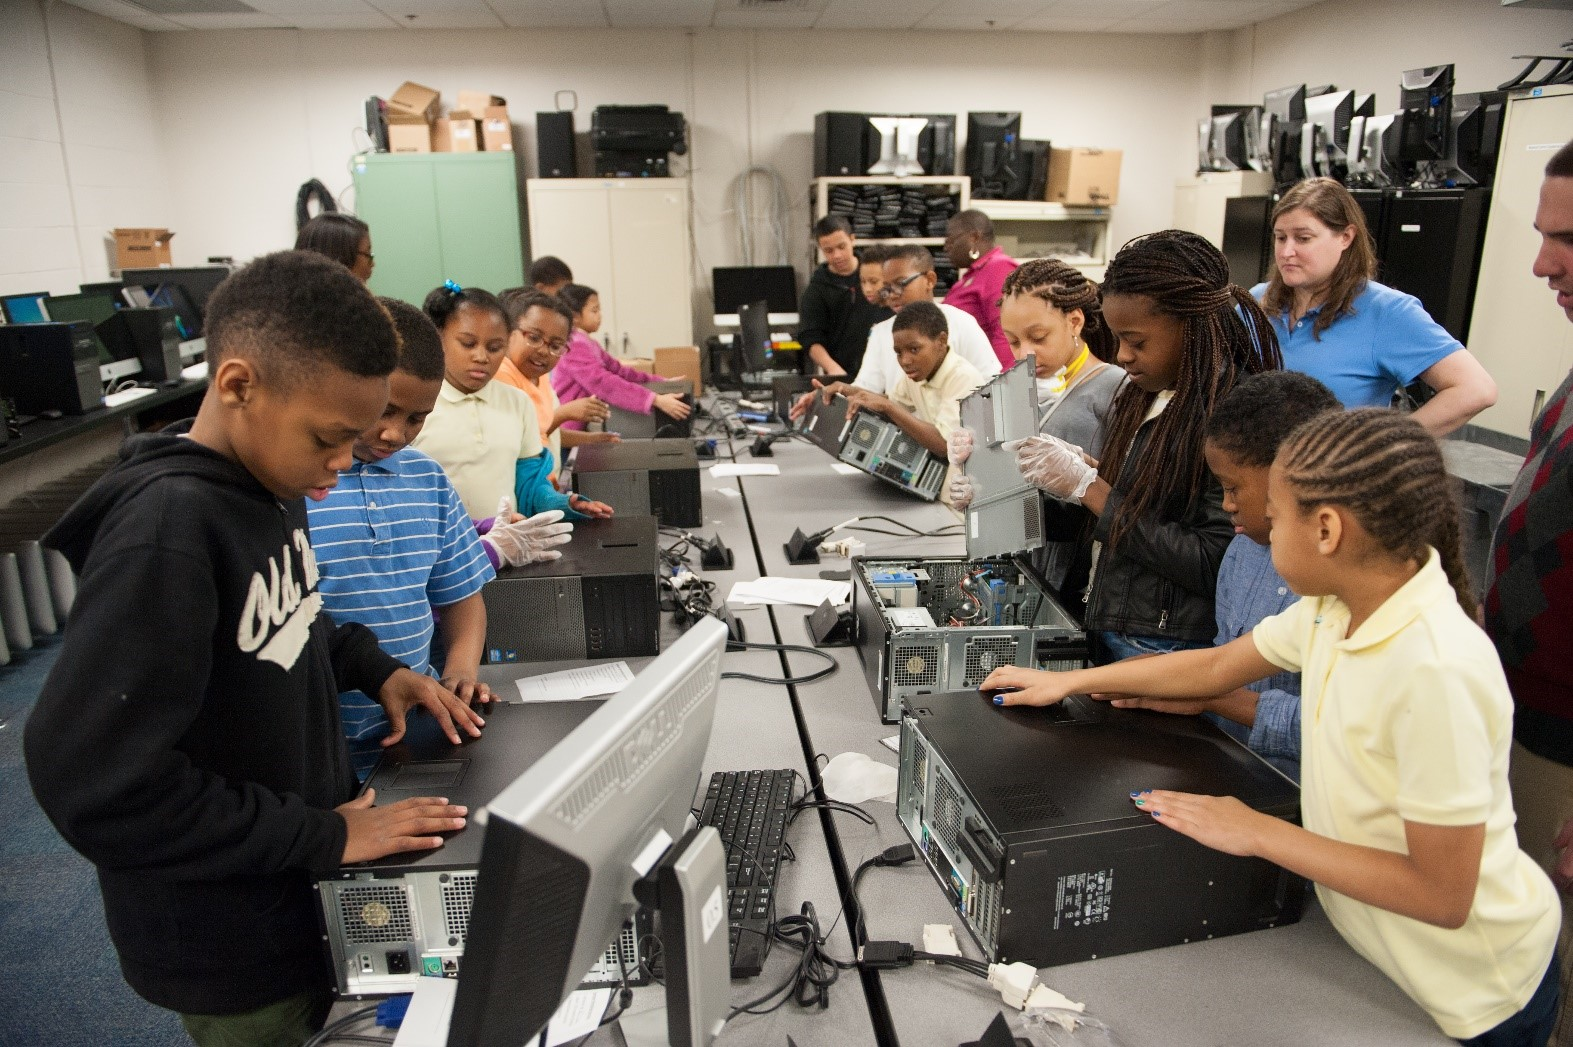 K-12 students learn valuable tech recycling skills as they help refurbish computers in the EduCycle program at Towson University in Maryland.